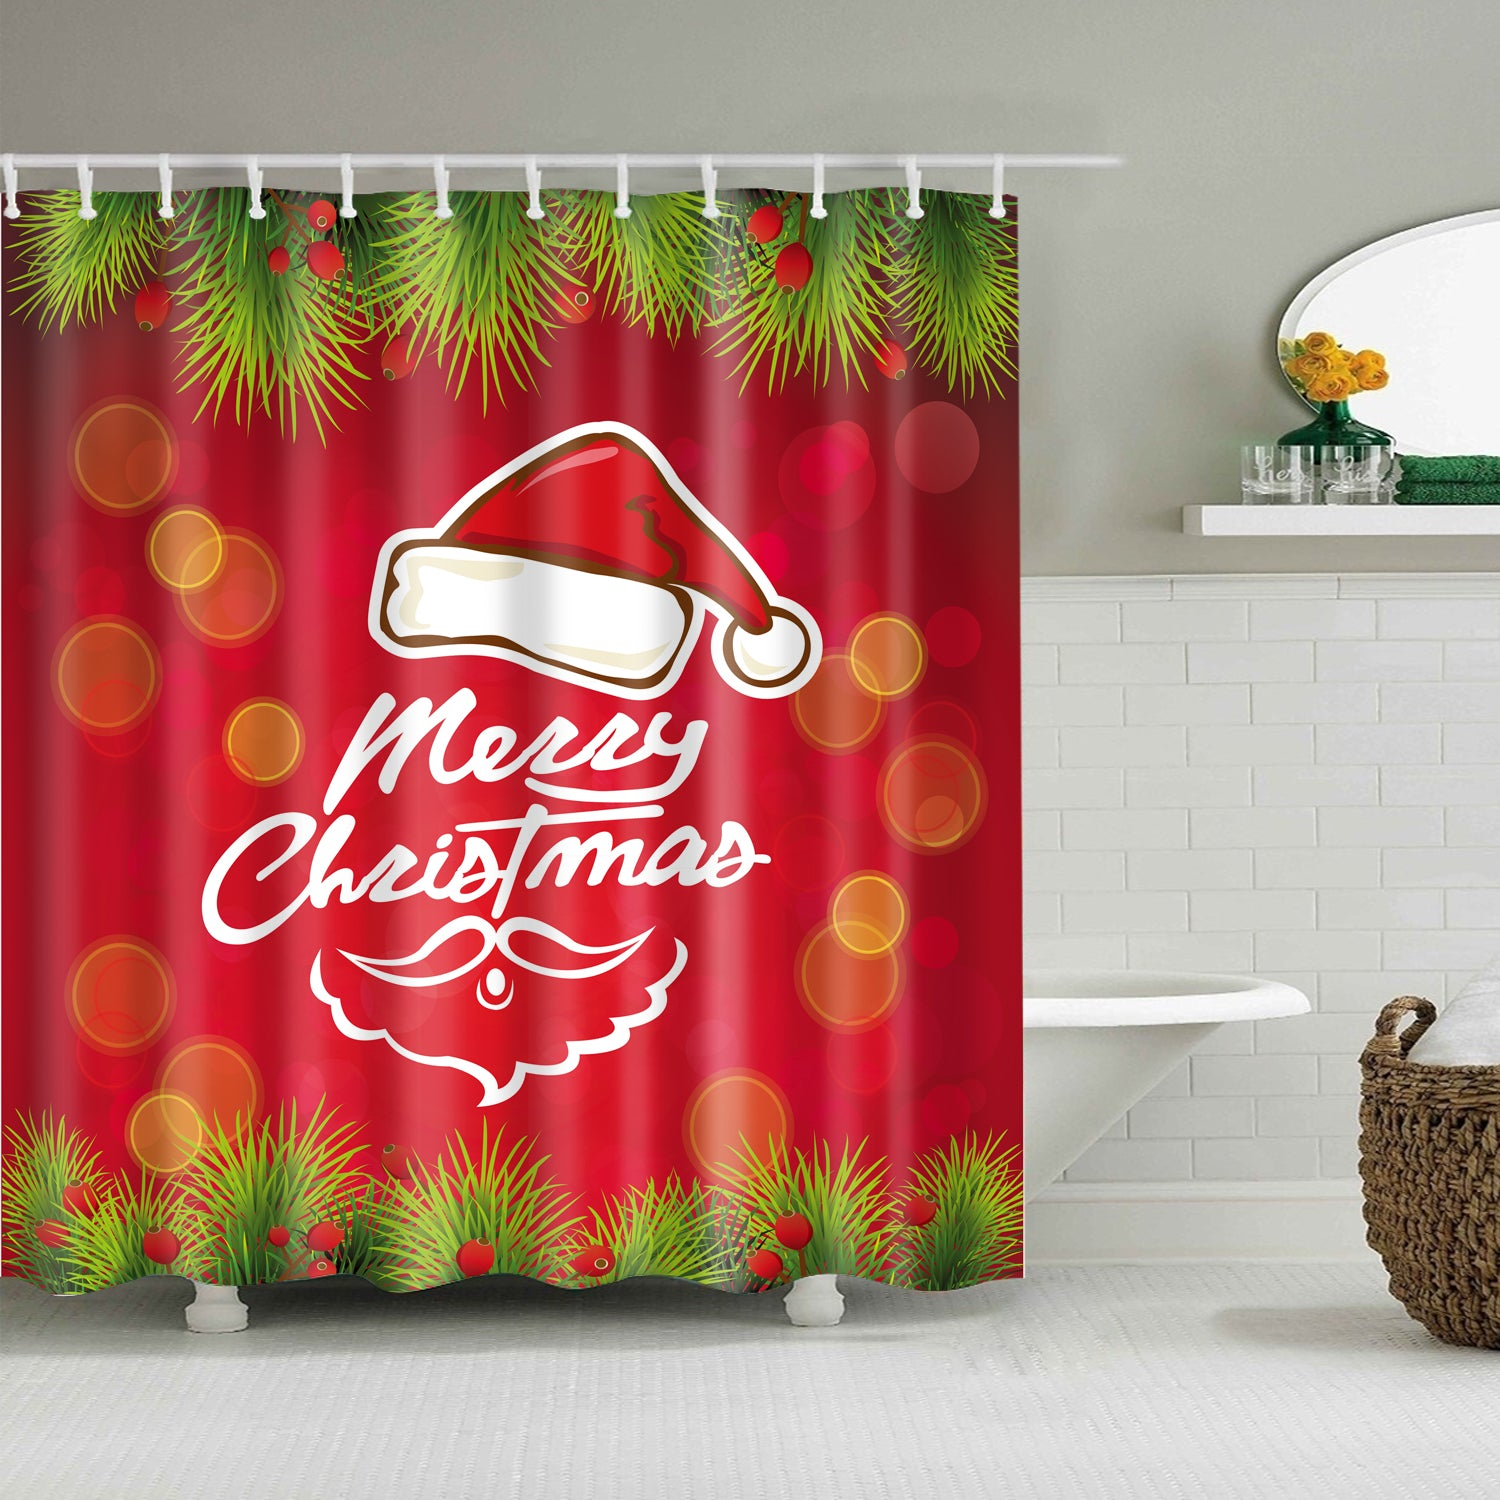 Red and Green Backdrop Christmas Quotes Shower Curtain